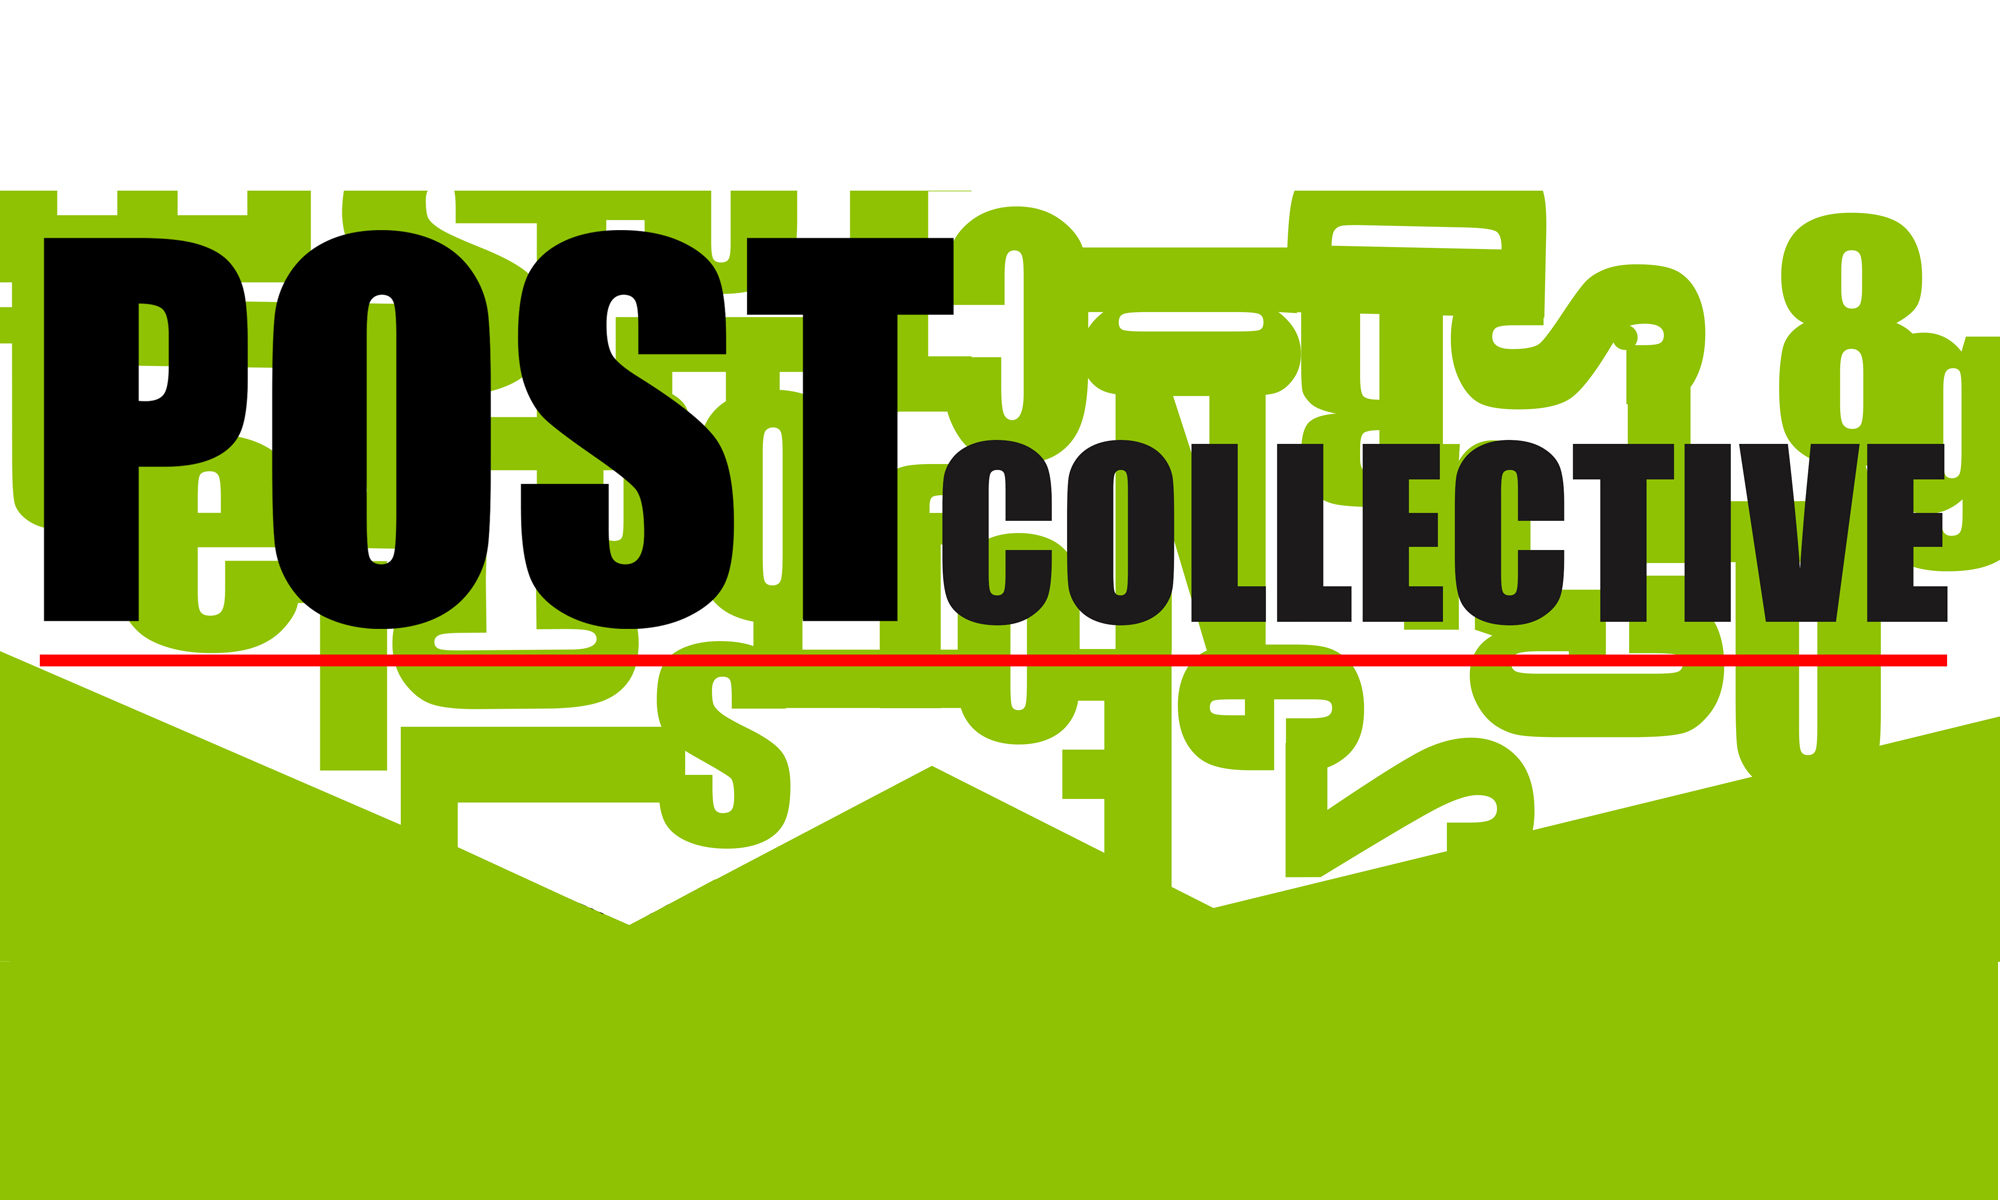 The Post collective